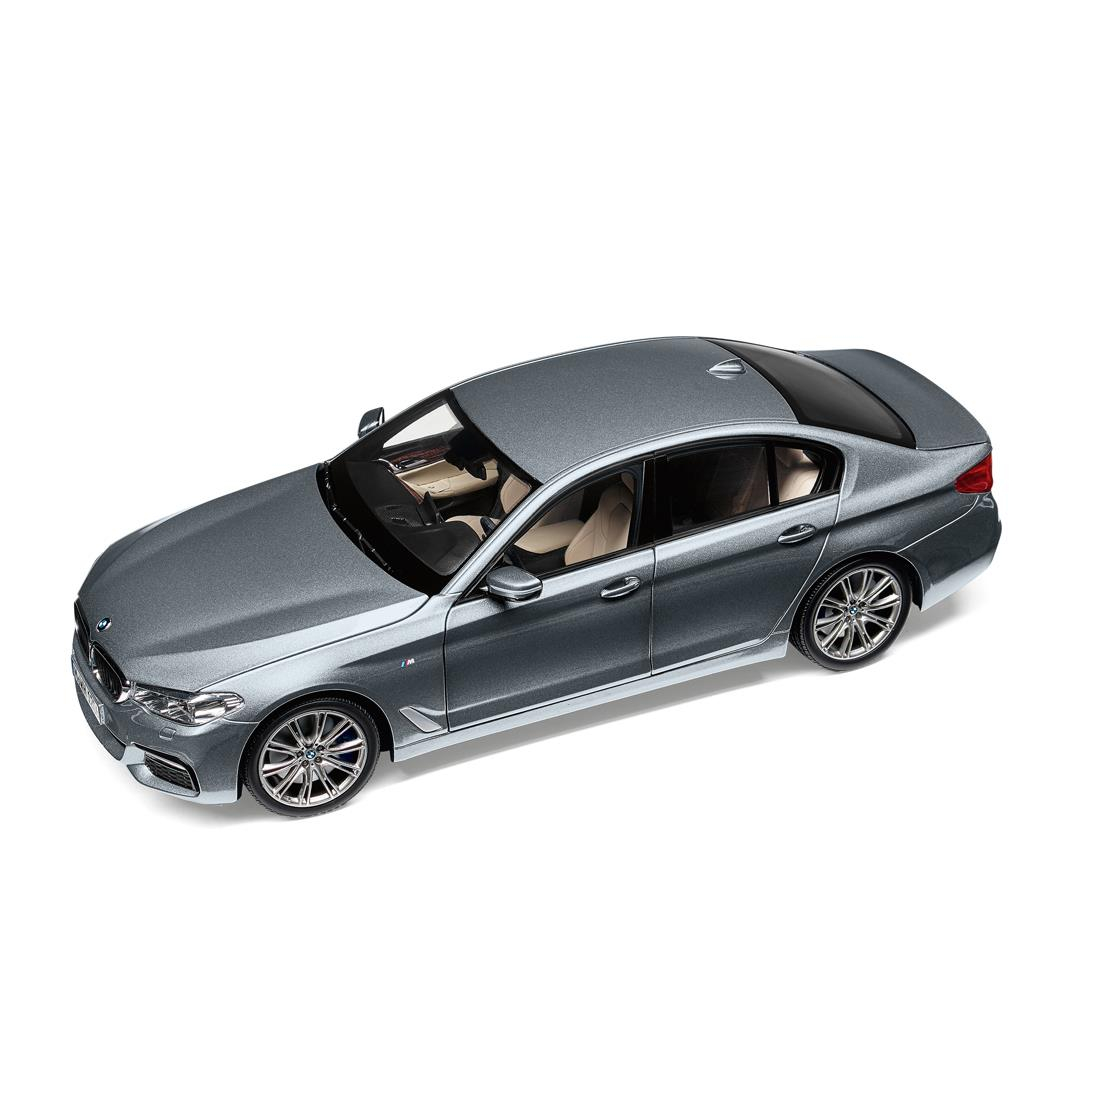 BMW MINIATURE BMW 5 SERIES Sophisto Grey (G30) 1:18